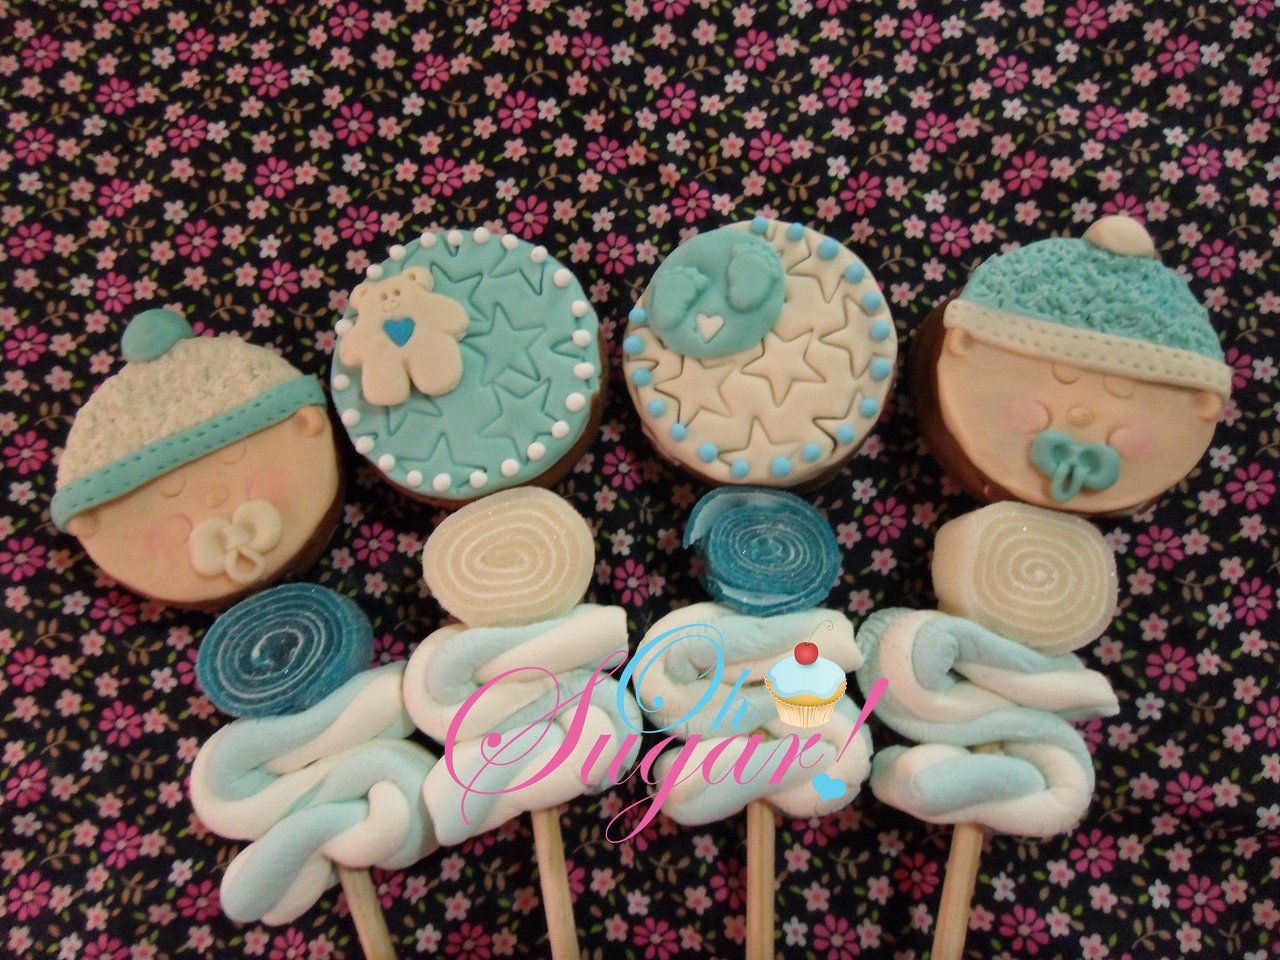 Mamuts Decorados Wix Reposteriaydetalles Created By Ohsugar Based On